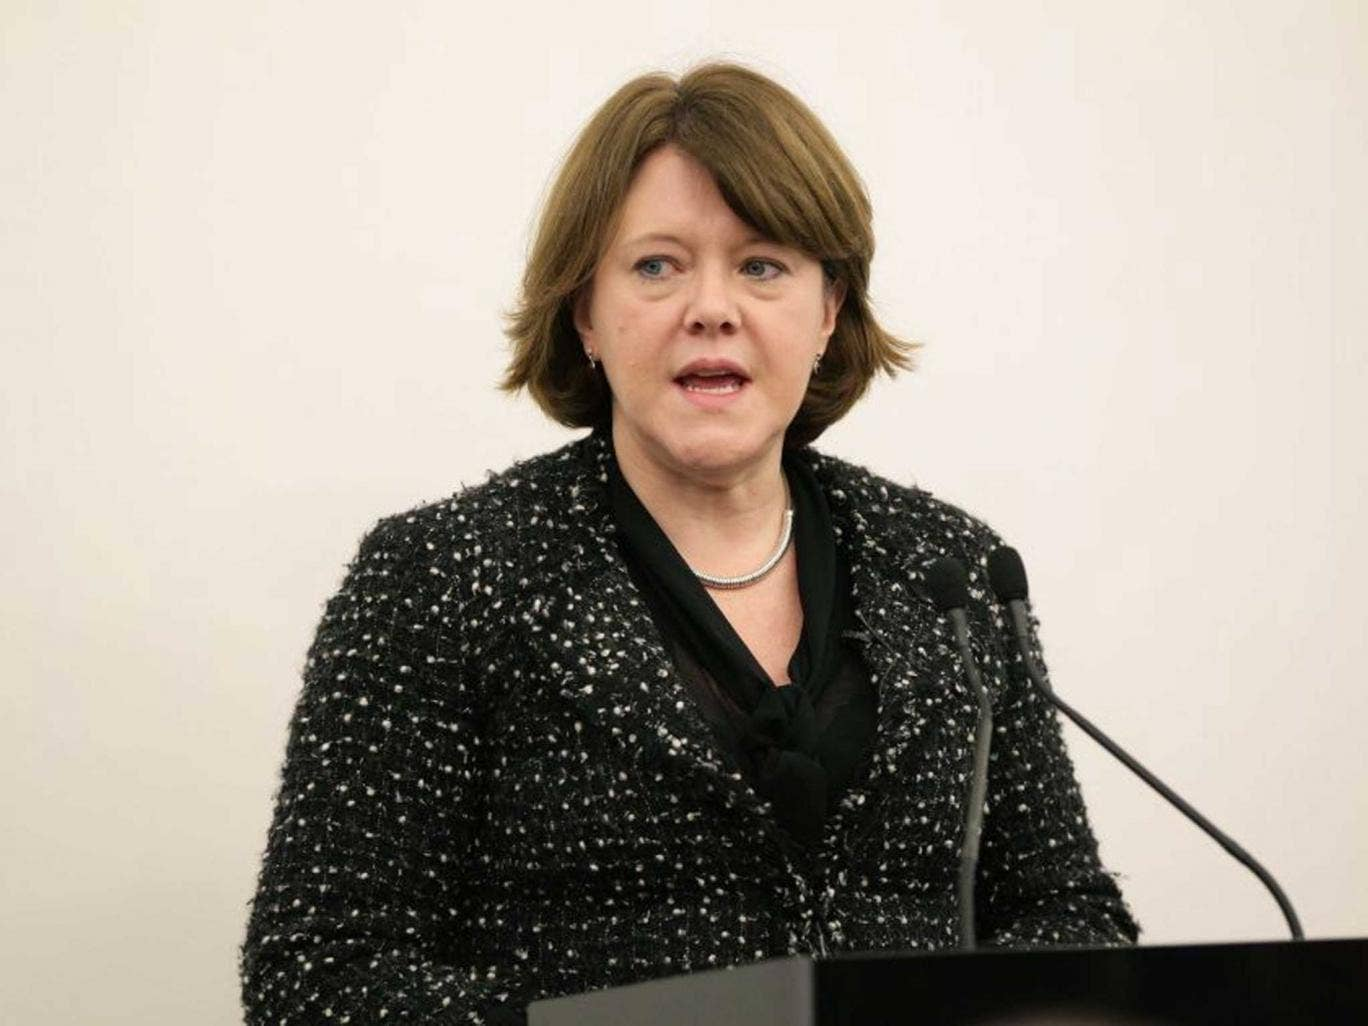 Maria Miller has come under fire for her - very - short apology